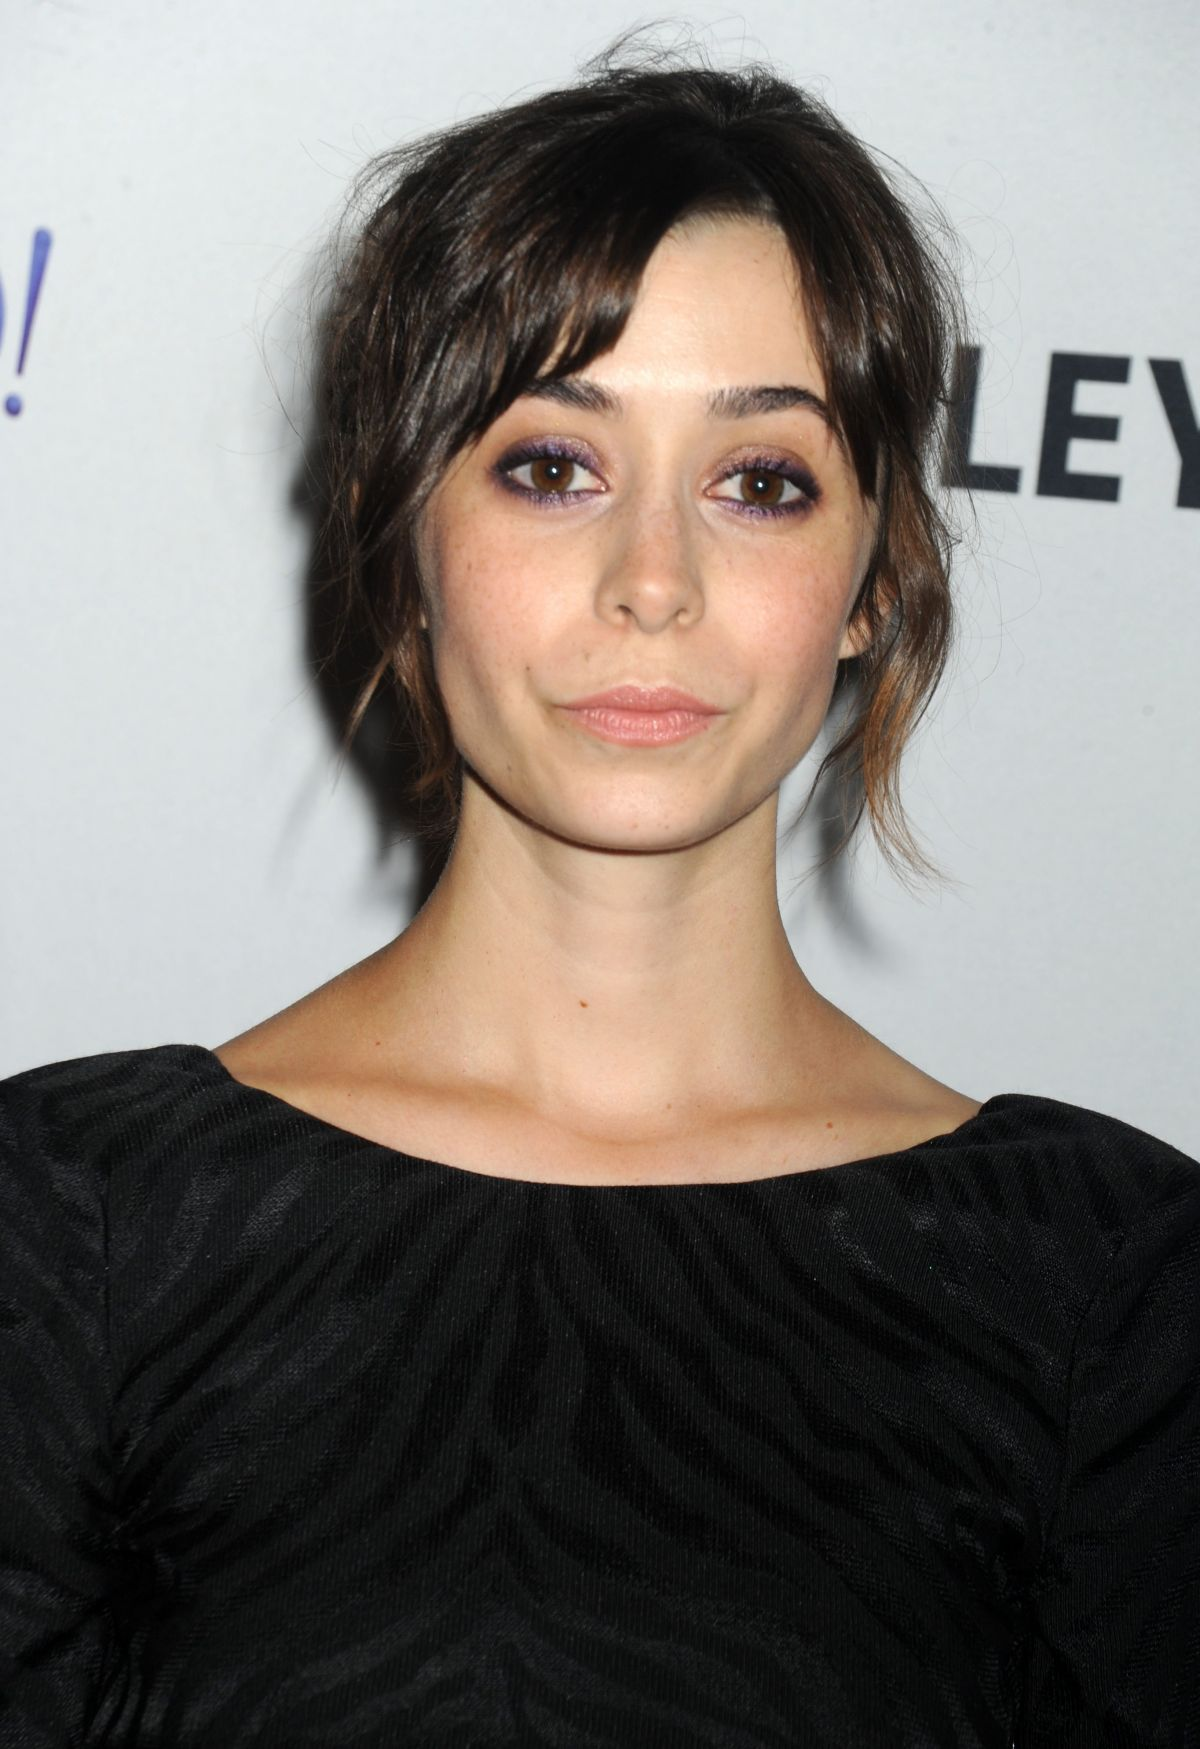 cristin milioti wolfcristin milioti – la vie en rose, cristin milioti wolf of wall street, cristin milioti ukulele, cristin milioti wiki, cristin milioti tumblr, cristin milioti reddit, cristin milioti the hill, cristin milioti and josh radnor, cristin milioti bio, cristin milioti wikipedia, cristin milioti call your girlfriend, cristin milioti 2016, cristin milioti wolf, cristin milioti fansite, cristin milioti sopranos, cristin milioti instagram, cristin milioti twitter, cristin milioti la vie en rose mp3, cristin milioti singing, cristin milioti husband